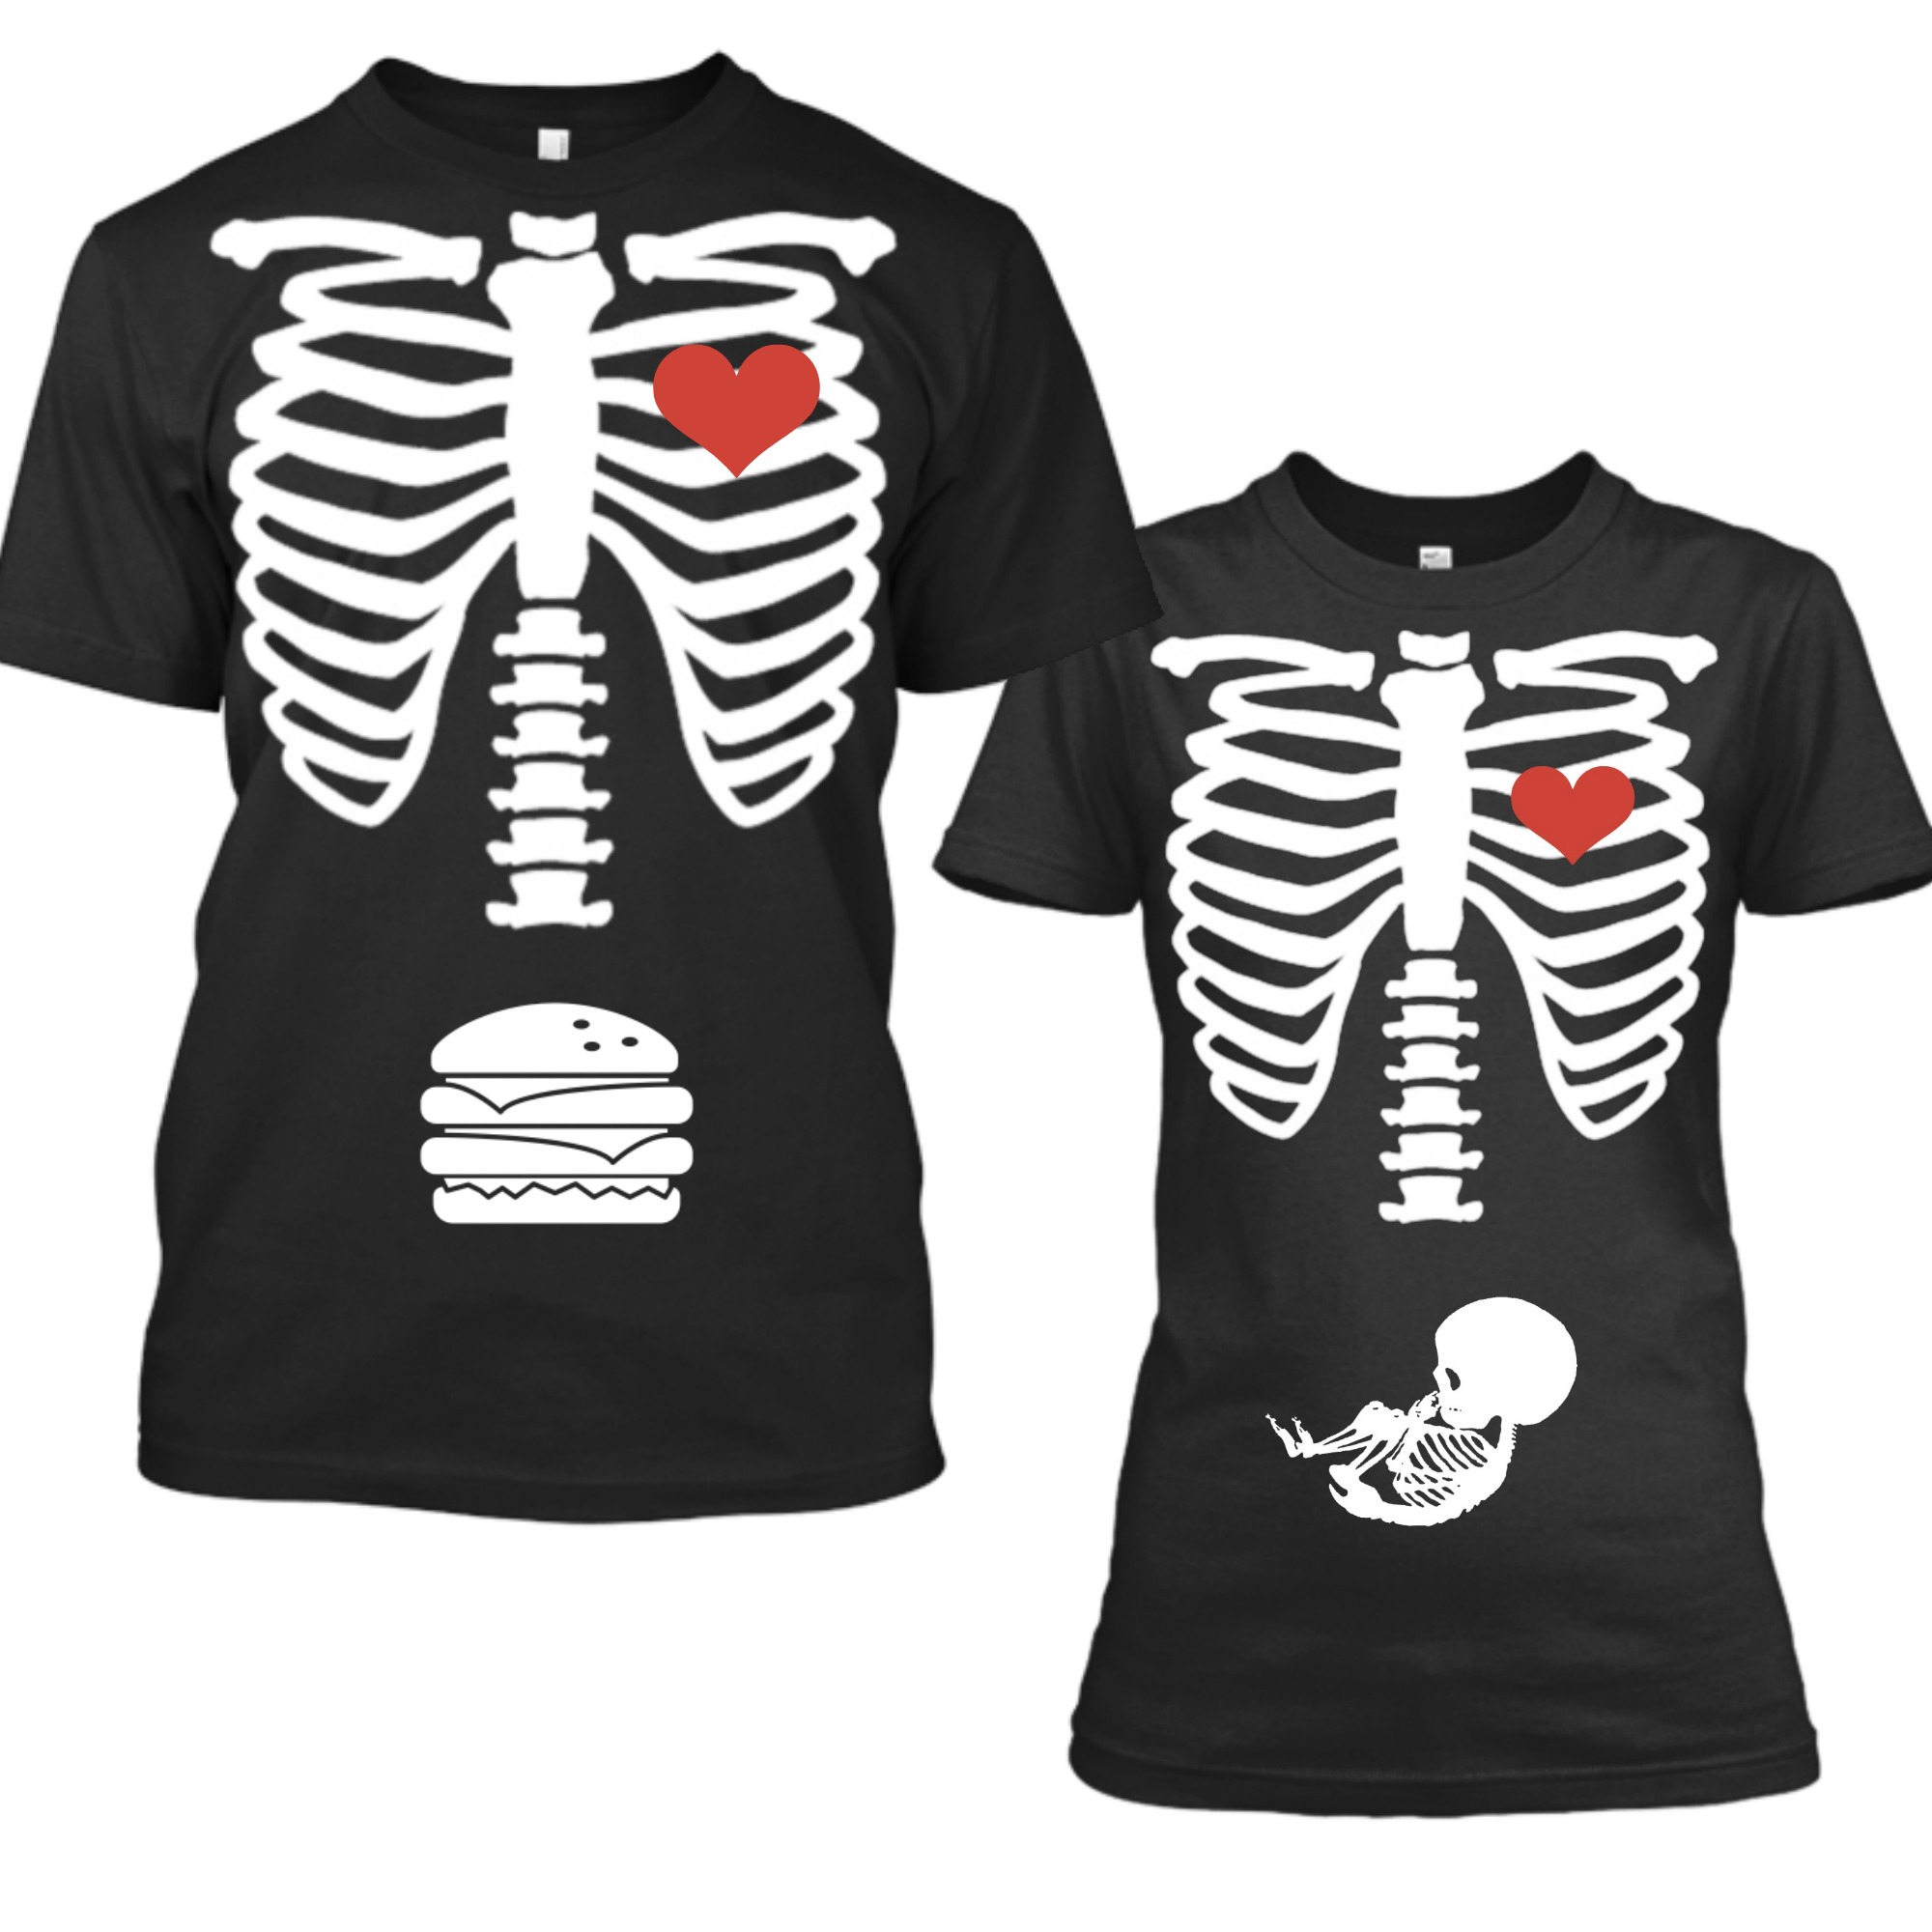 a354be77c52b2 Matching Halloween Pregnancy Announcement Shirts, Skeleton Baby  Announcement Maternity Shirt, Funny Halloween Matching Tshirts ...